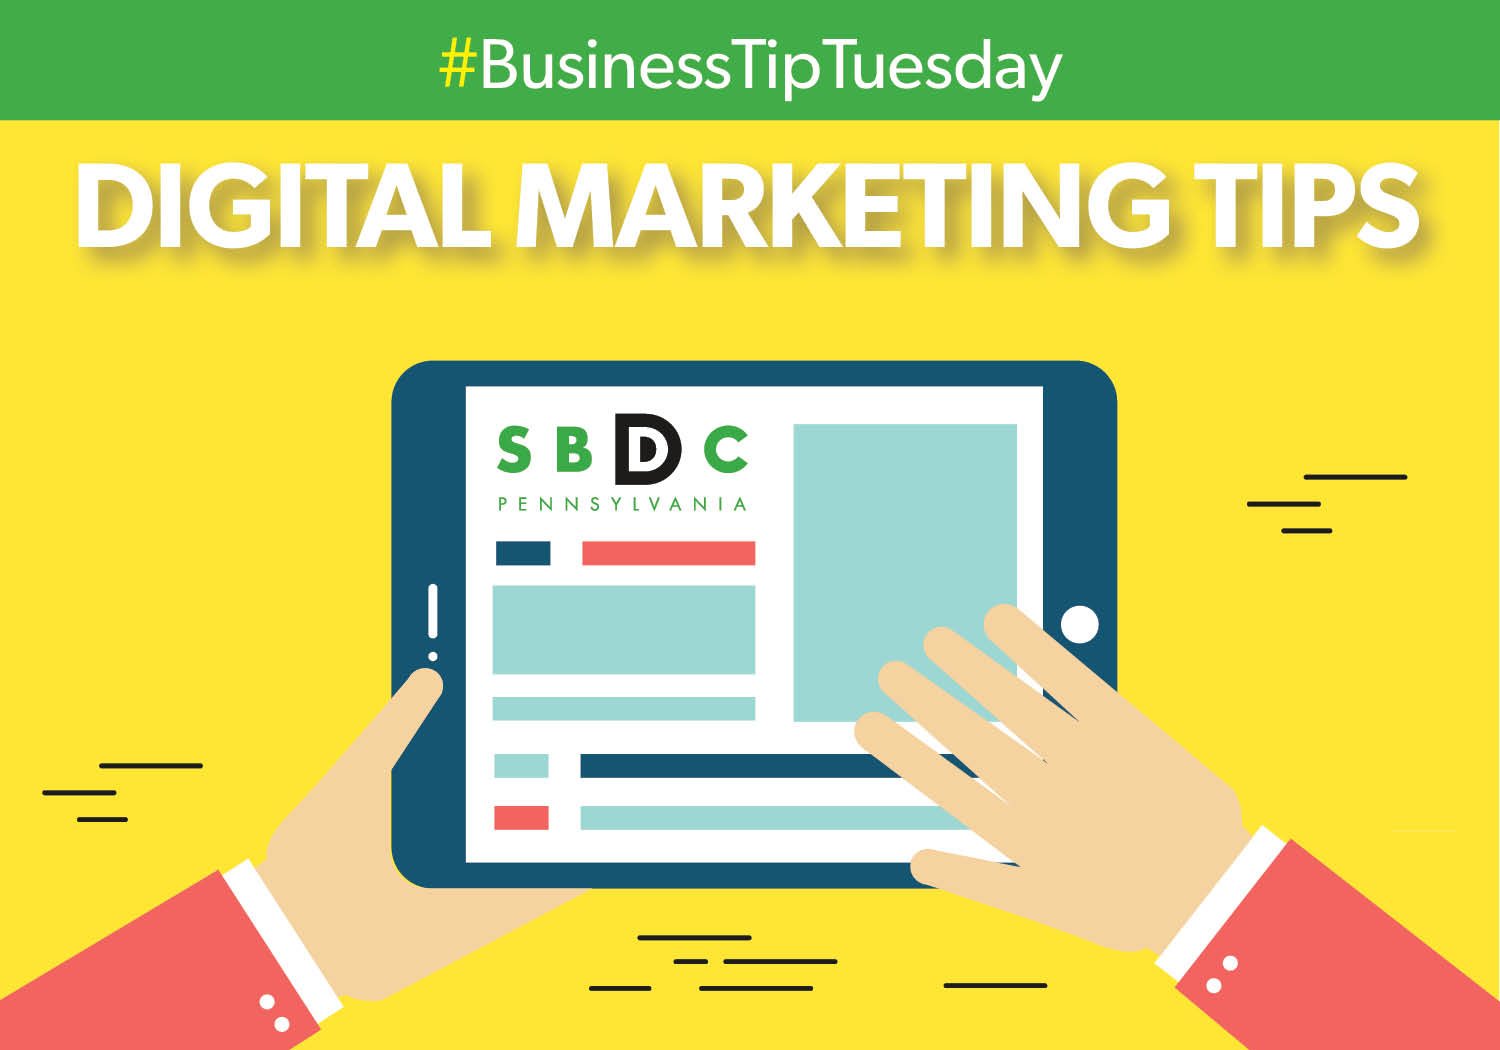 #BusinessTipTuesday – Digital Marketing Tips